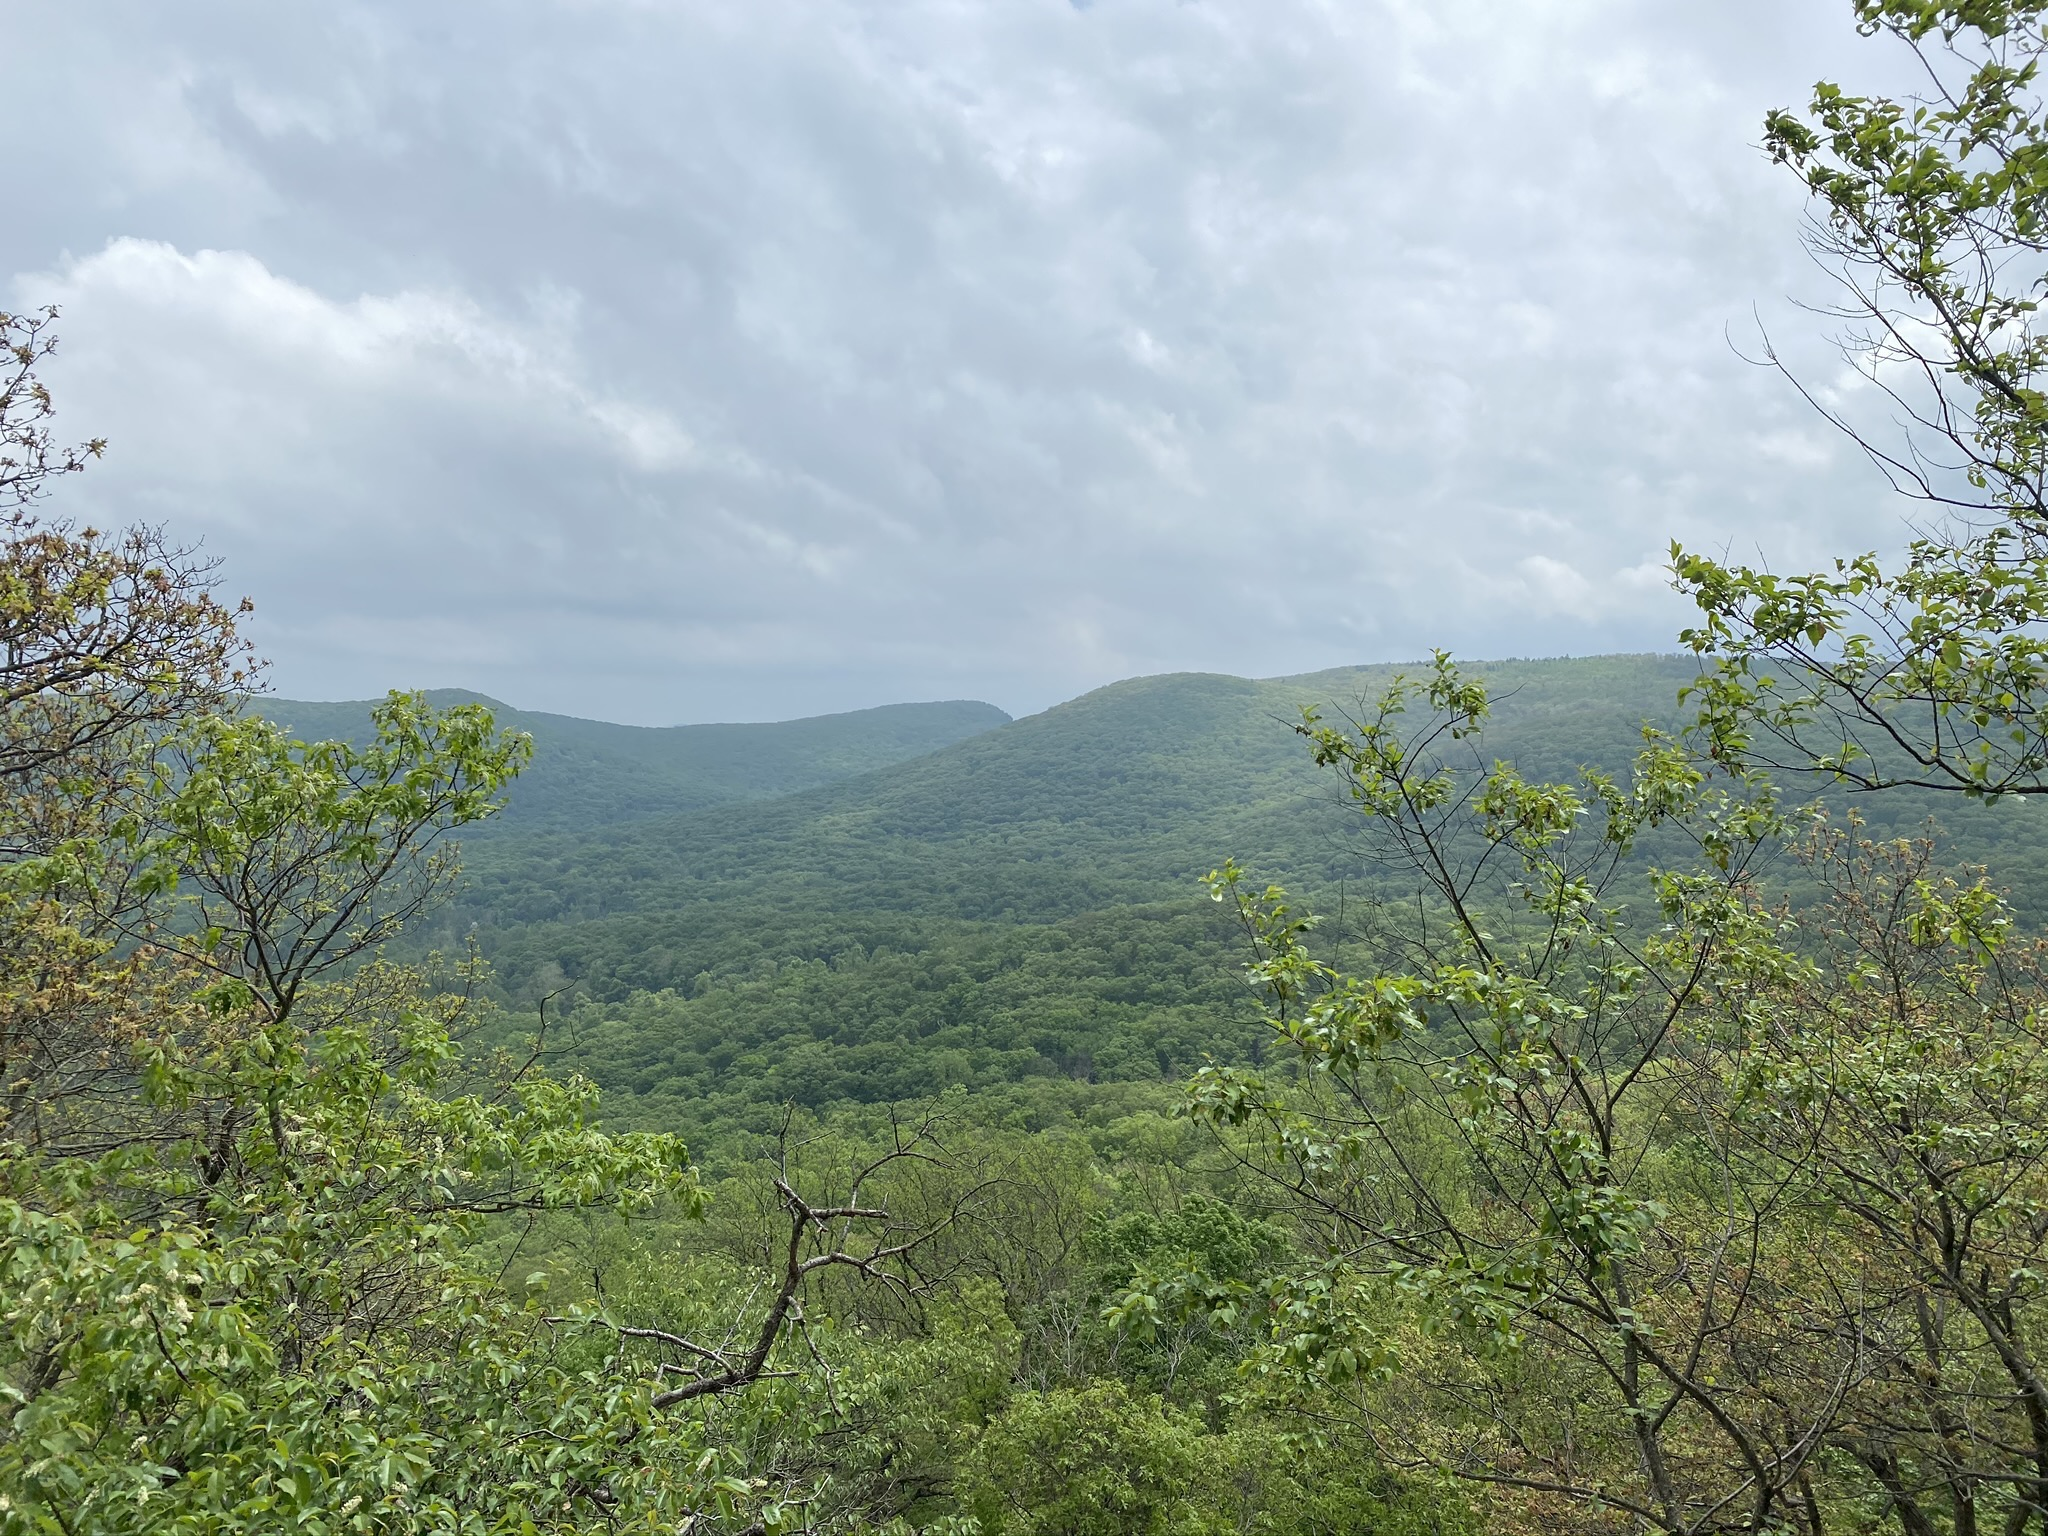 bear mountain and trees